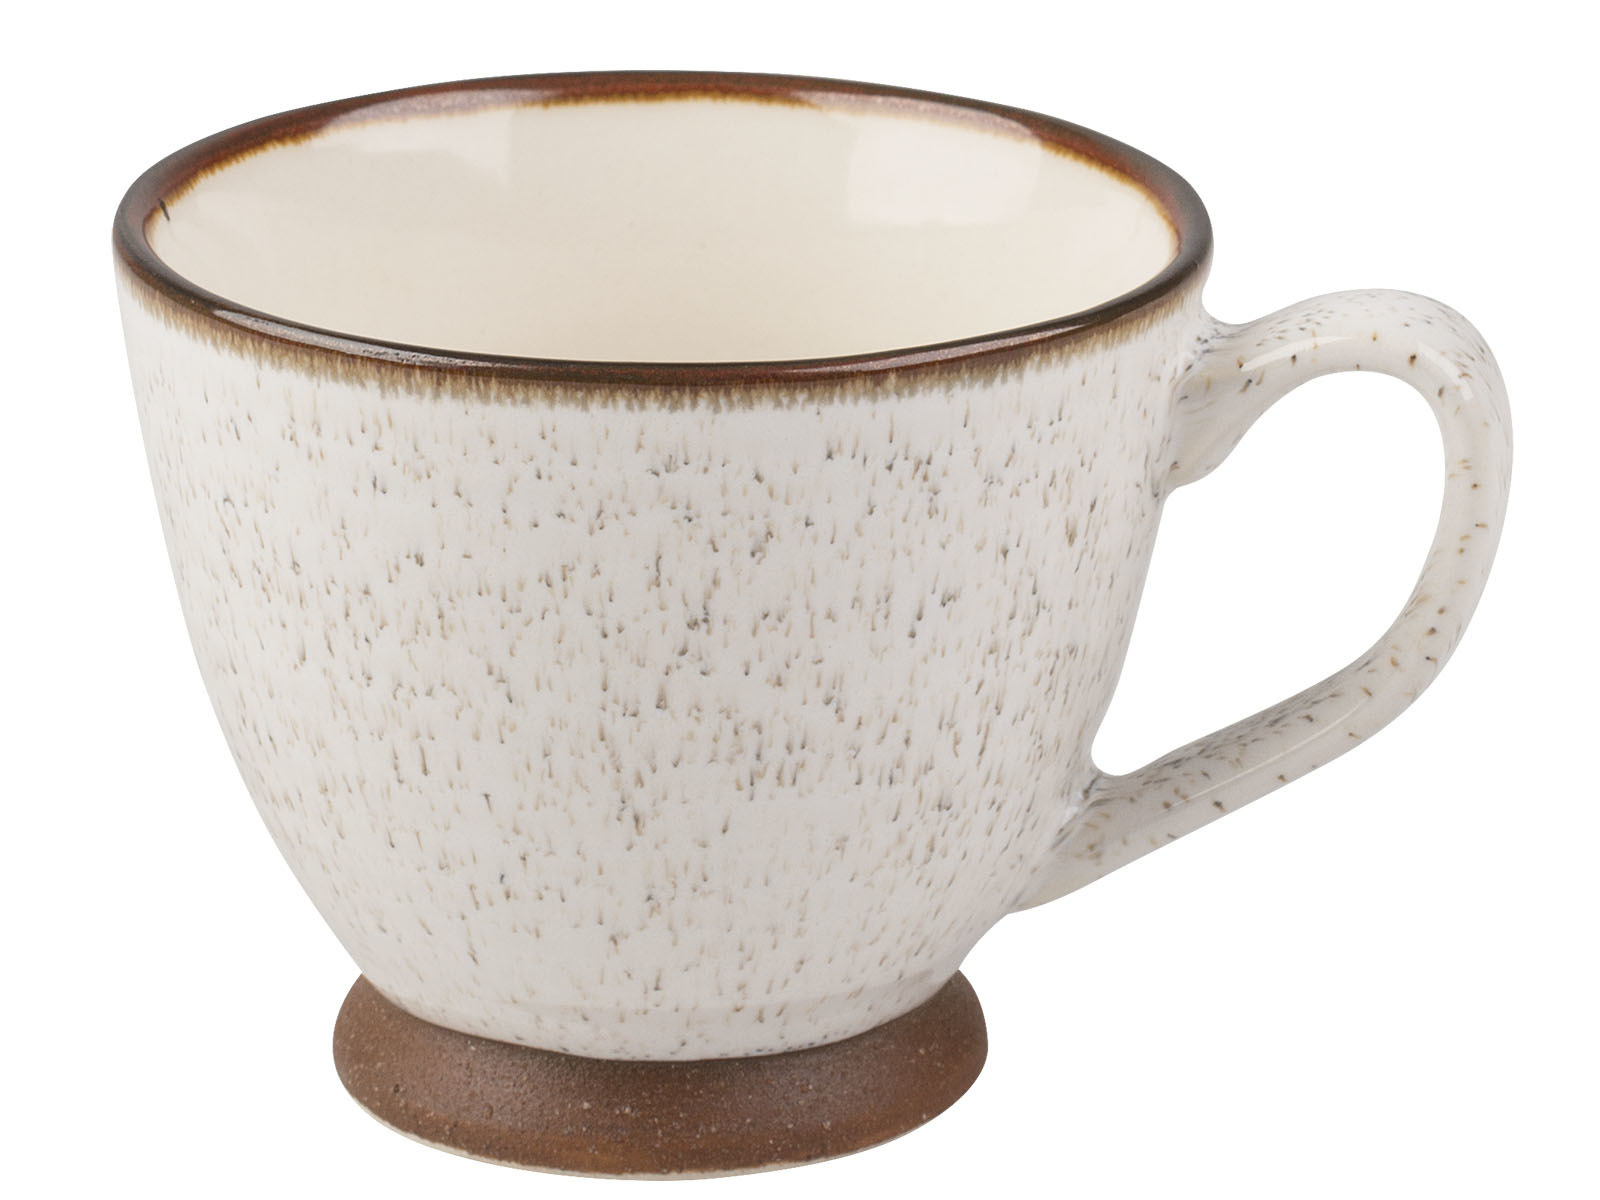 La Cafetiere Small Textured Teacup Cream